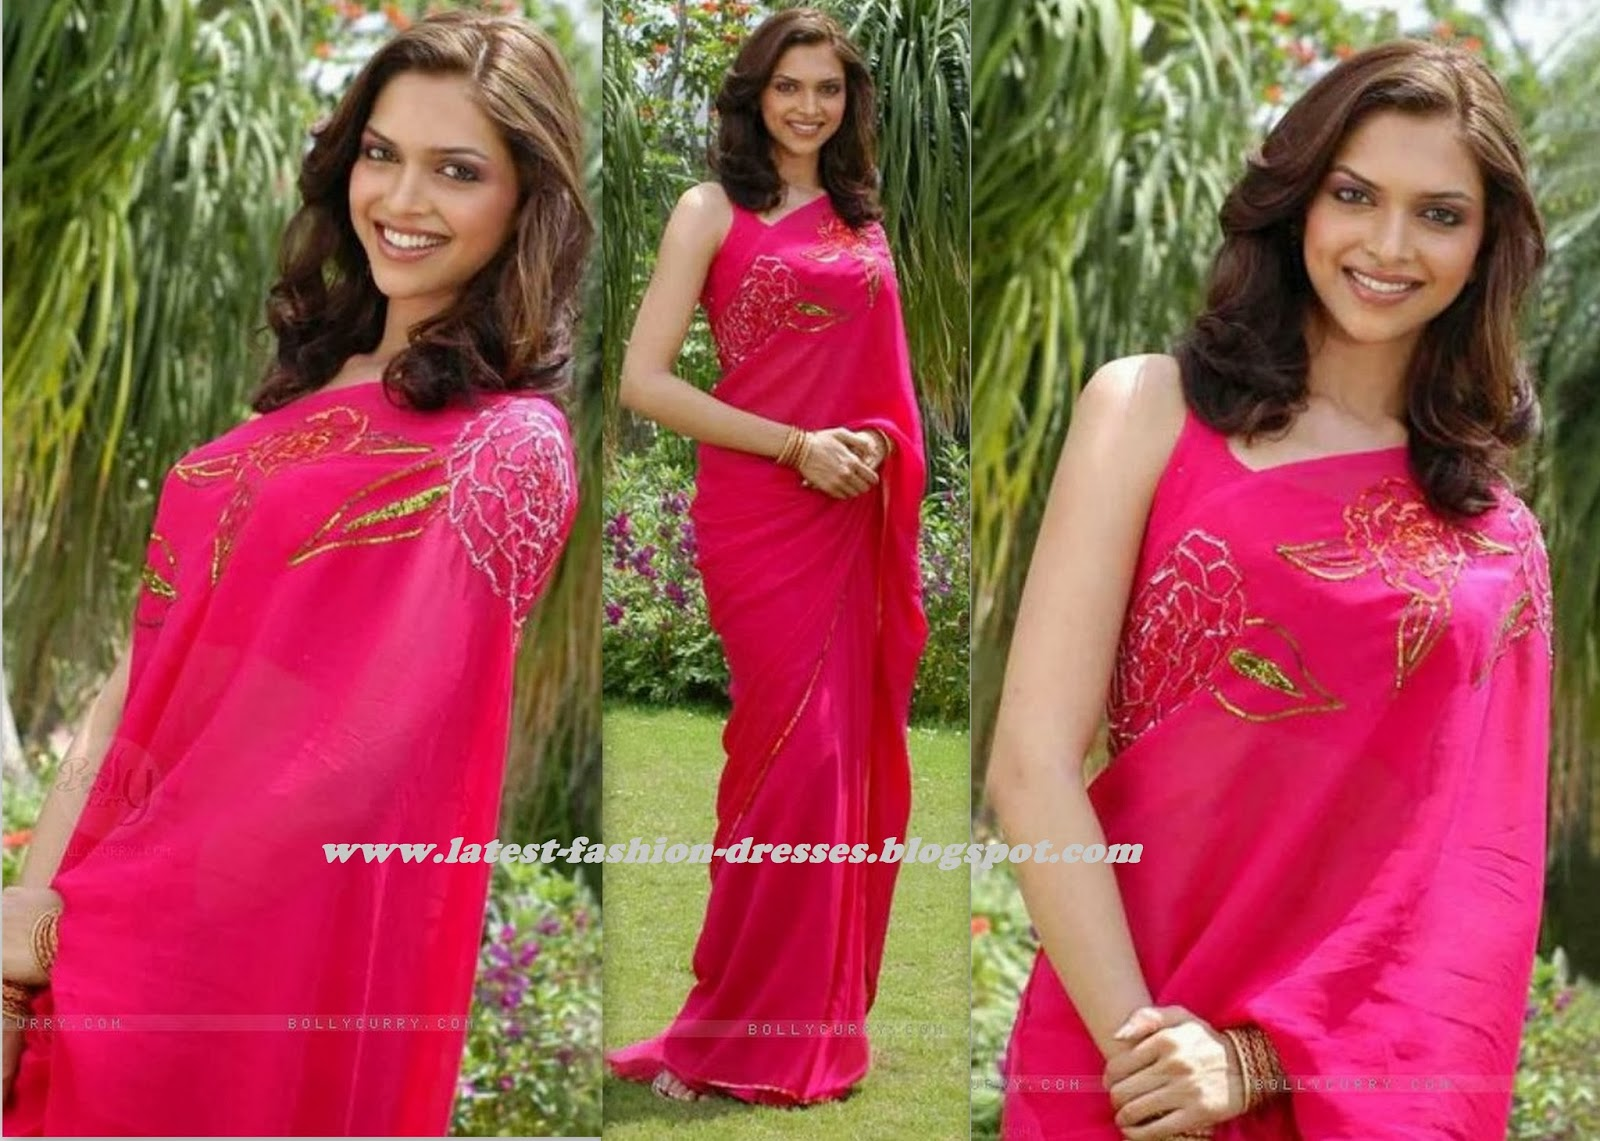 BOLLYWOOD DEEPIKA PADUKONE IN PINK SAREE